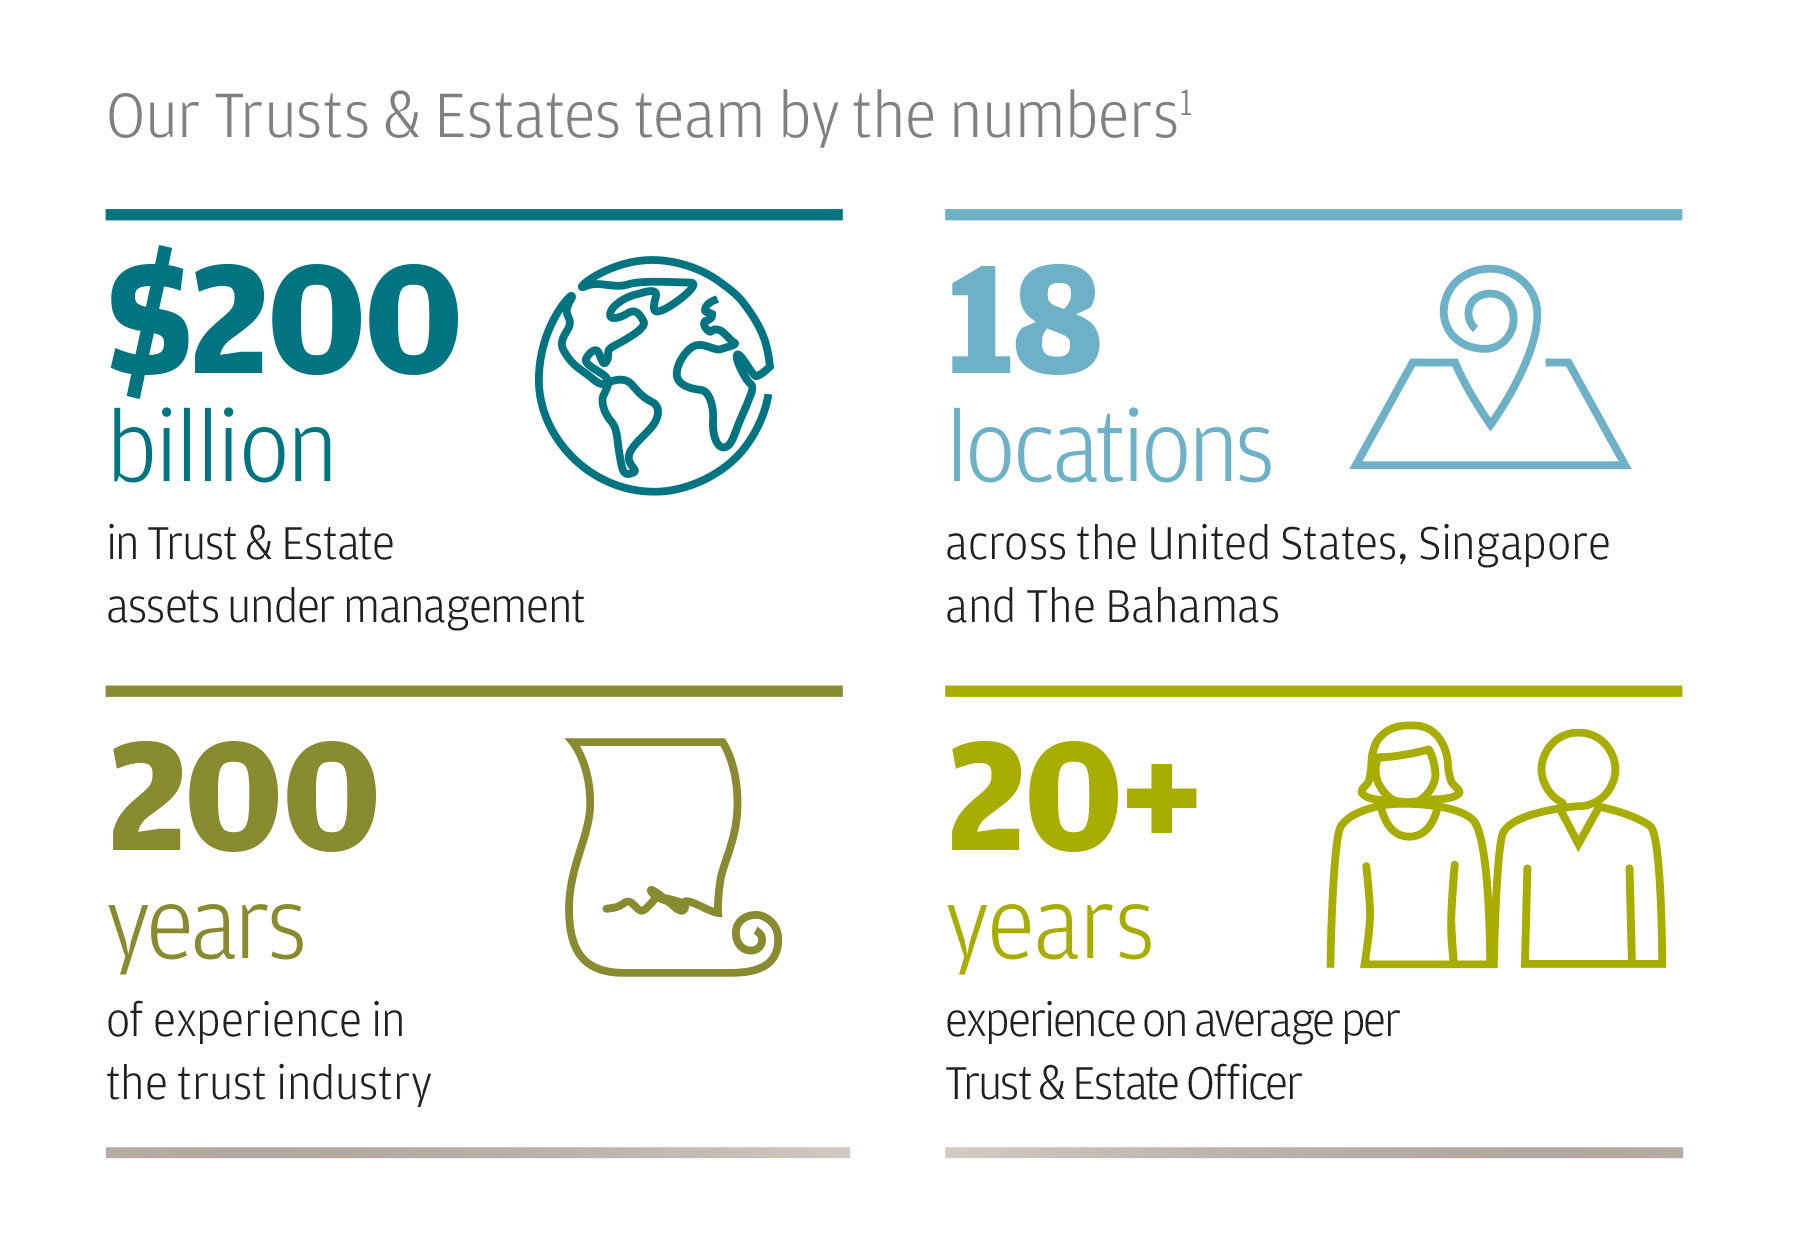 This chart includes a breakdown of our Trusts & Estates team by the numbers. We have $200 billion in trust and estate assets, 18 locations across the U.S., Singapore and The Bahamas, 200 years of experience in the trust industry and over 20 years of average experience per trust and estate officer. This data is approximated and as of November 2020.